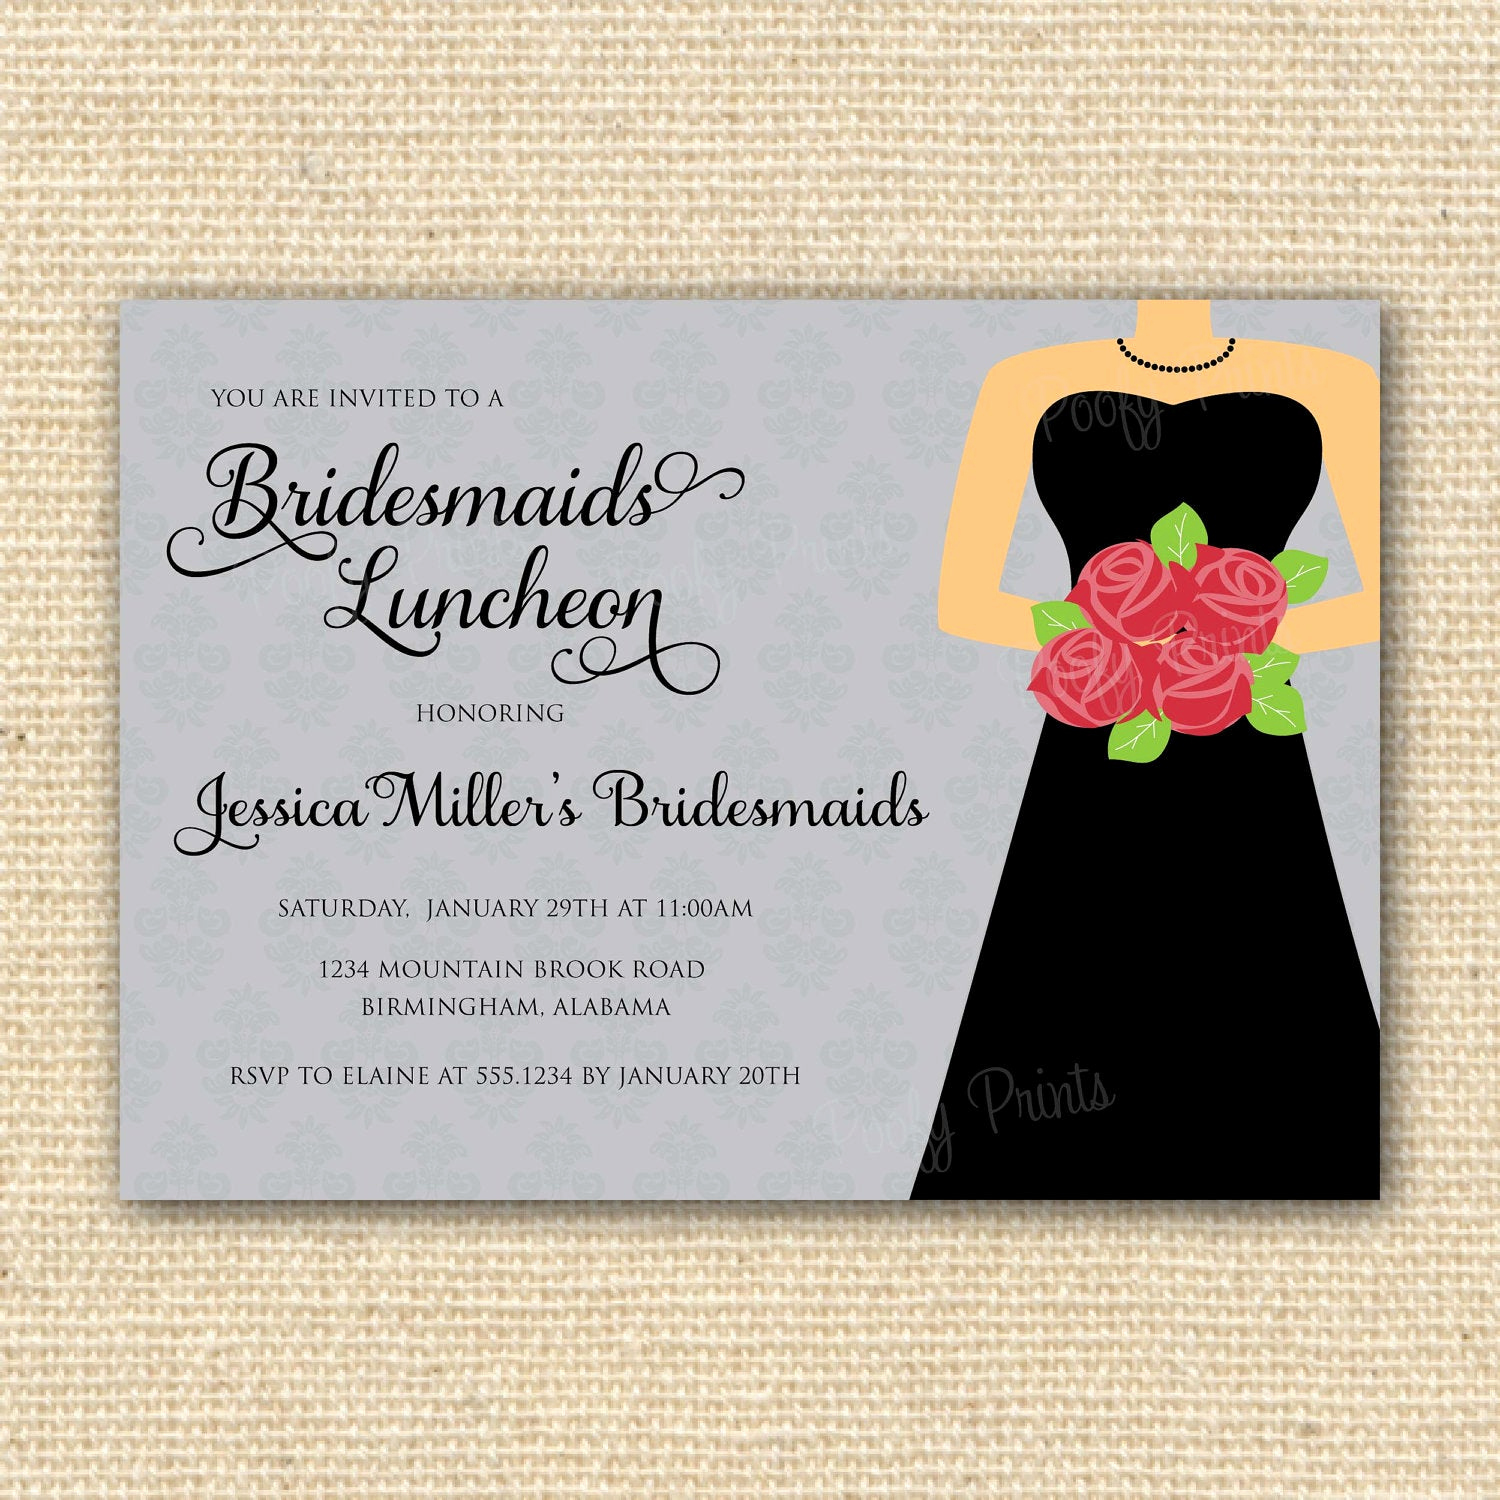 Bridesmaid Luncheon Invitation Wording Unique Bridesmaids Luncheon Invitation Bridal Brunch Diy by